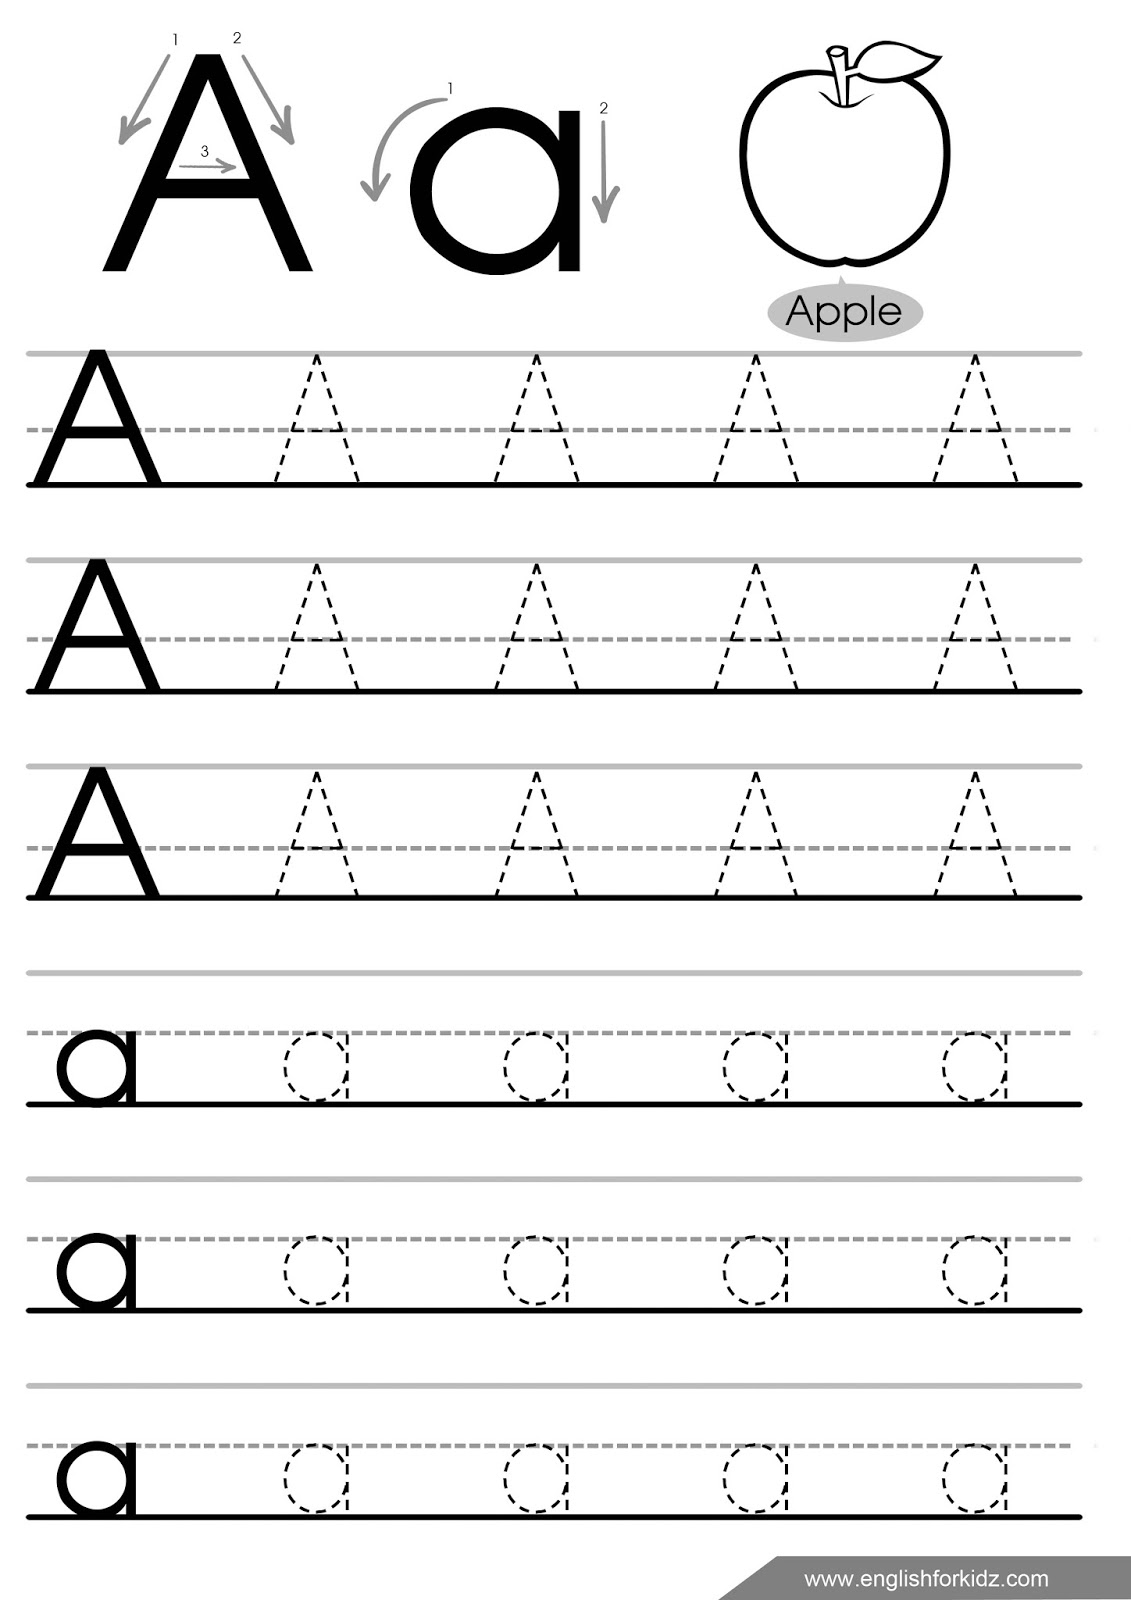 Uncategorized Letter A Worksheet letter tracing worksheets letters a j worksheet english for kids